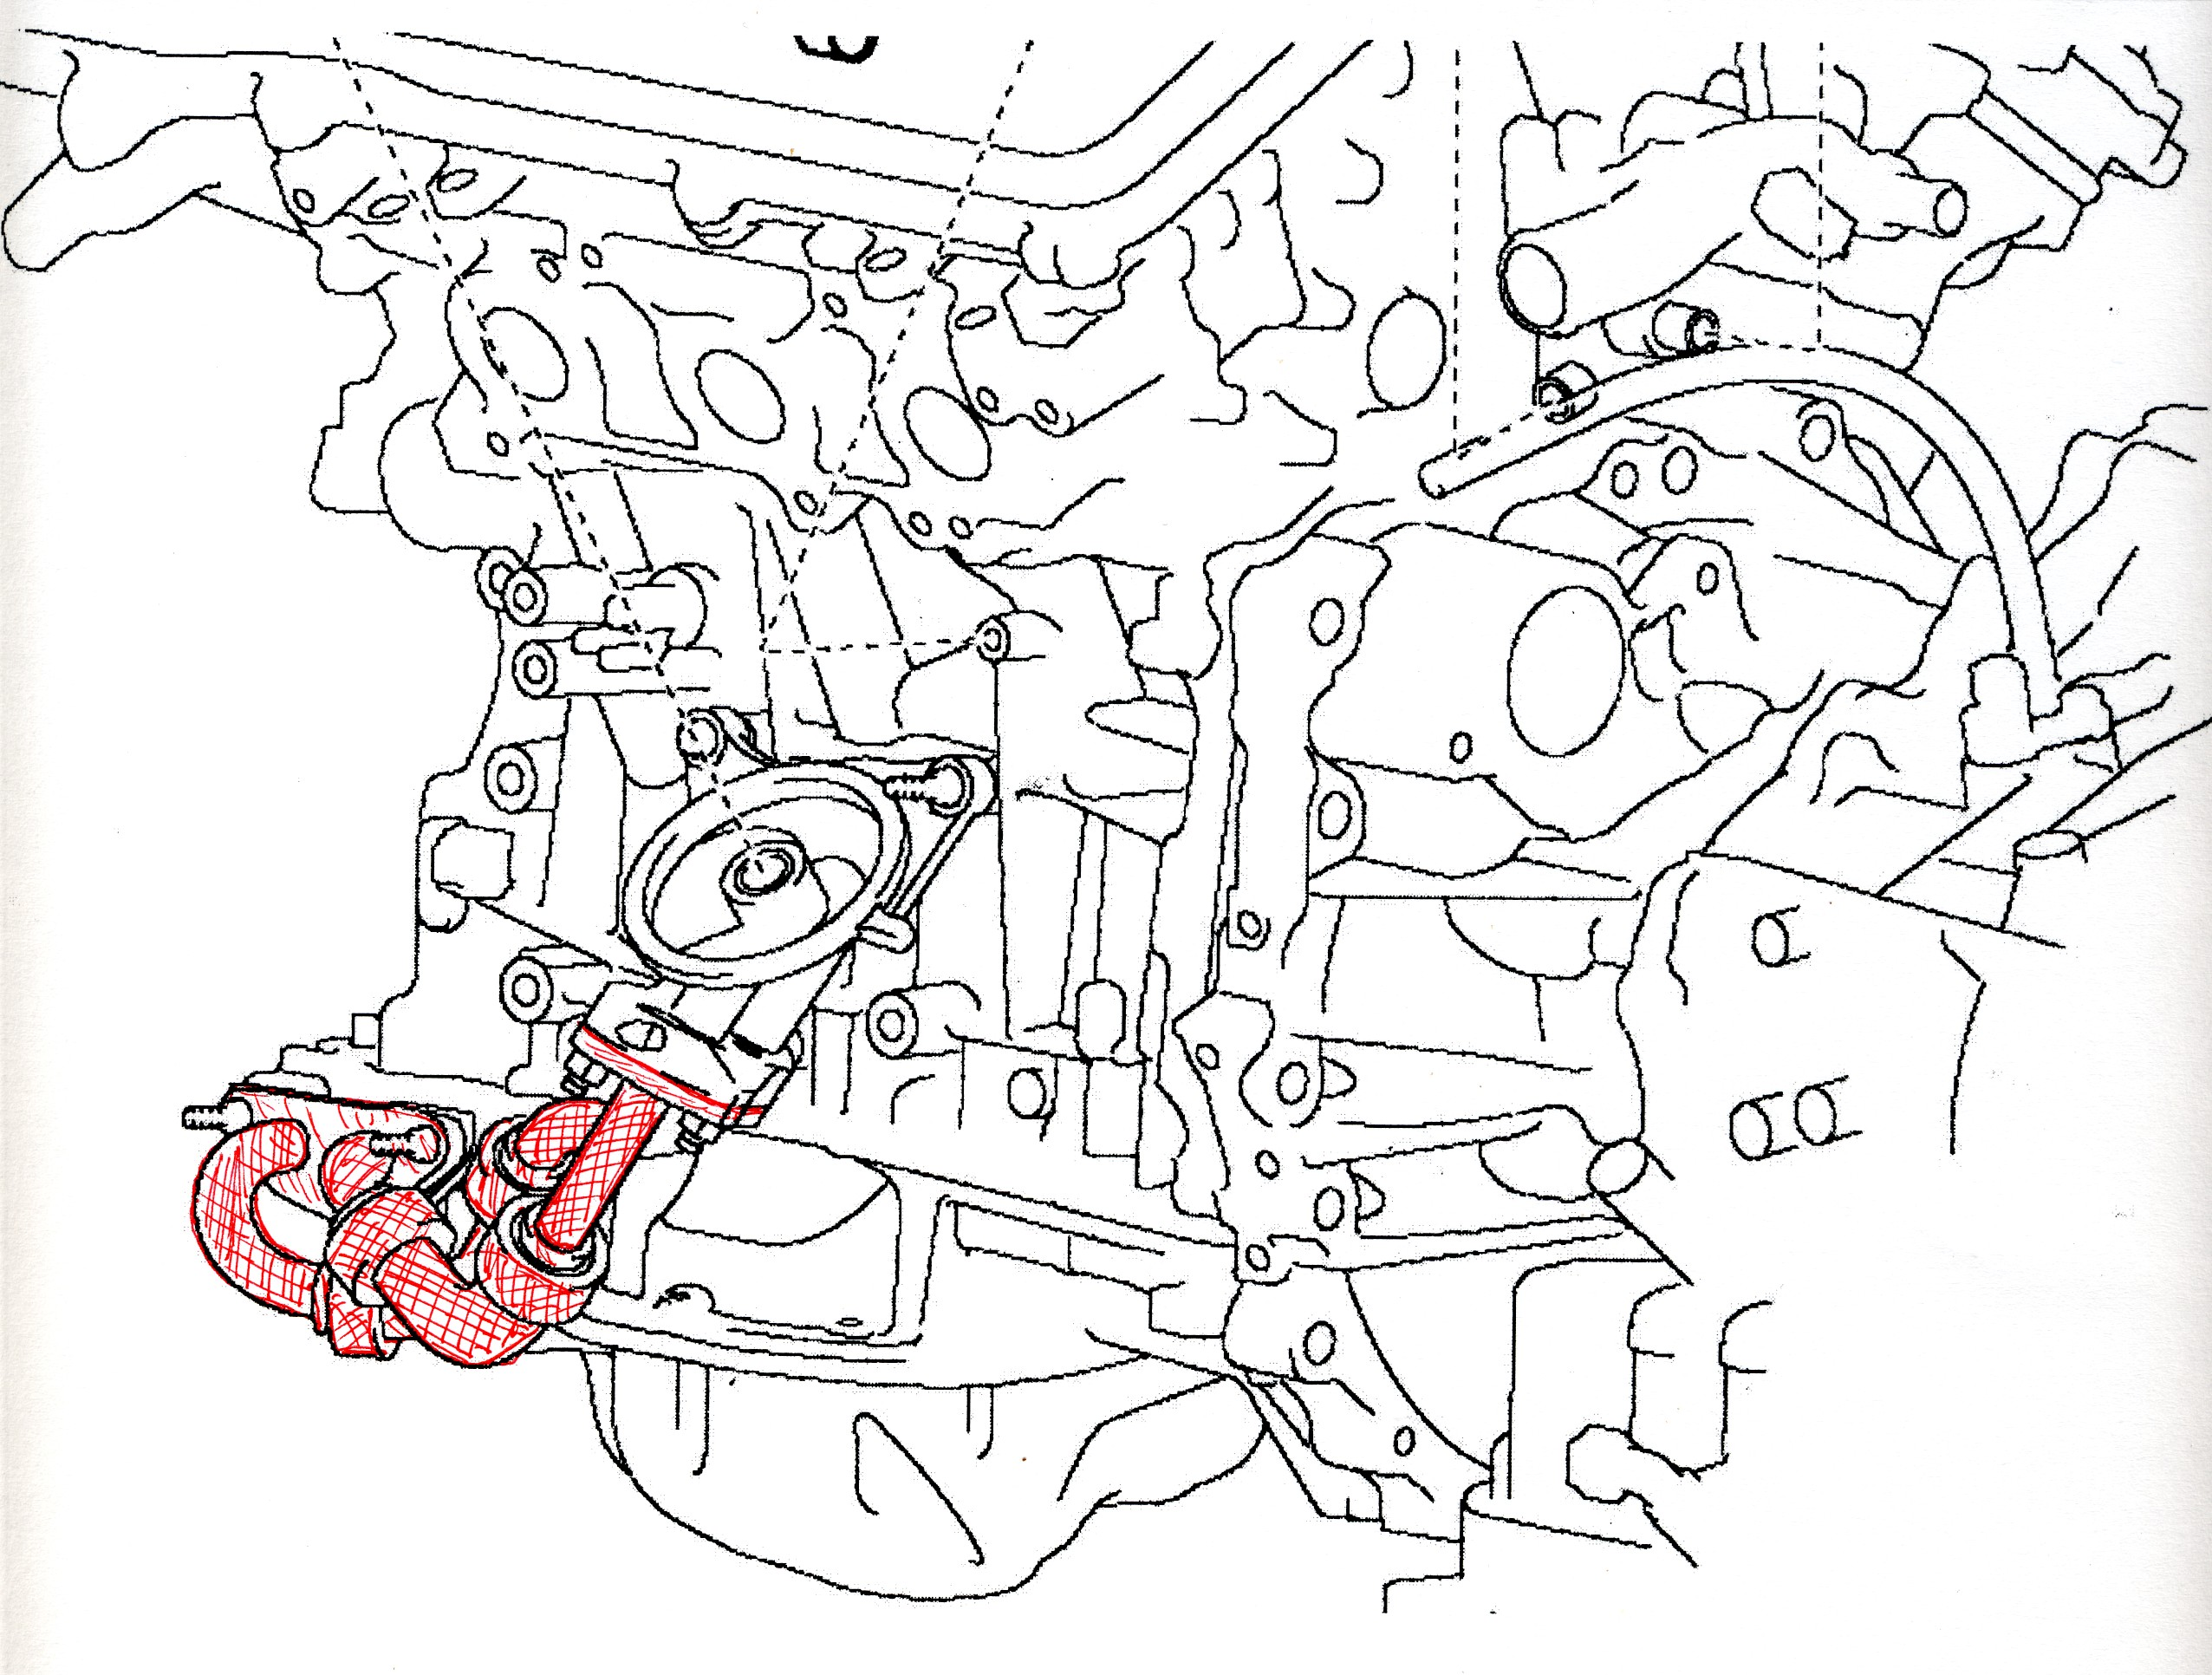 [WRG-9867] 2007 Lexus Is 350 Engine Diagram